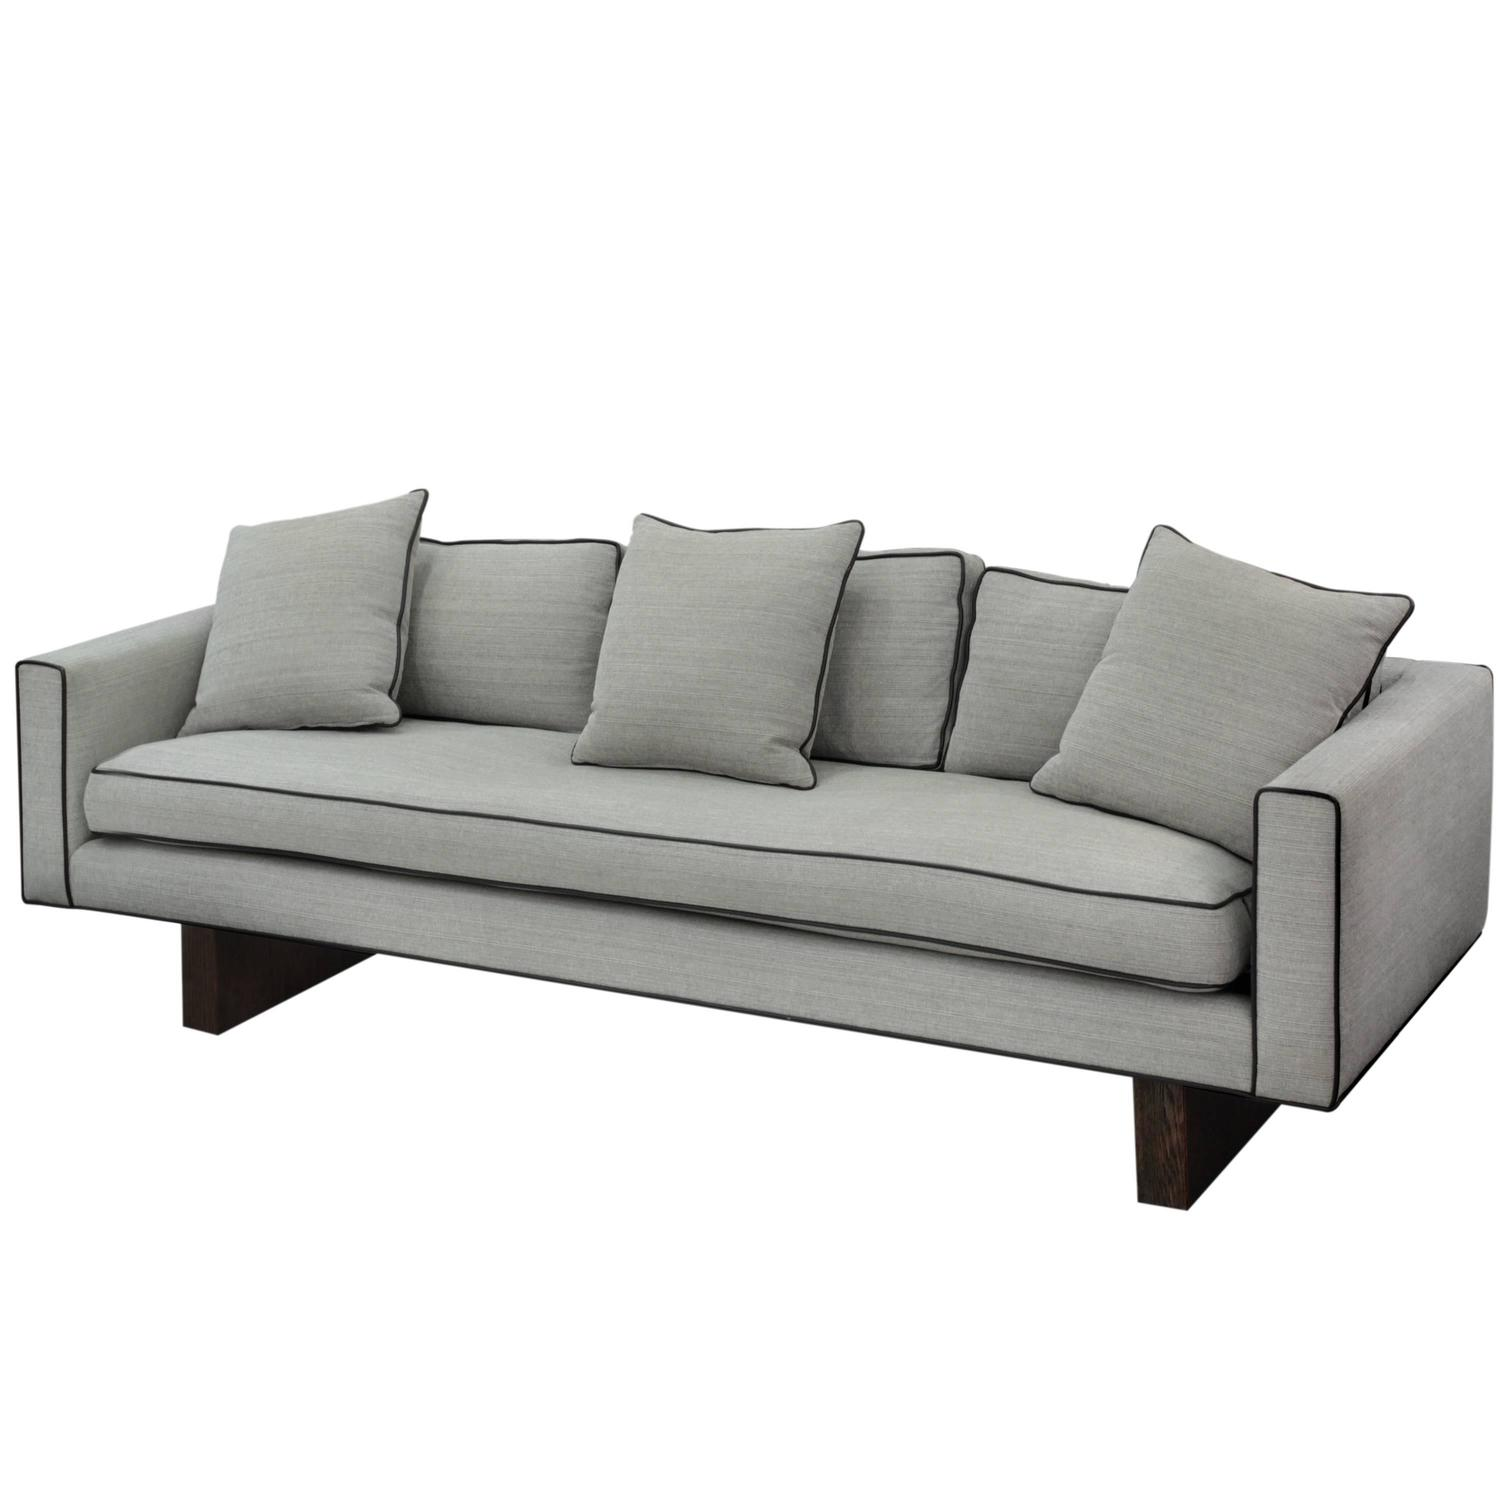 Clean Line Sofa No. 1573 By Harvey Probber For Sale At 1stdibs